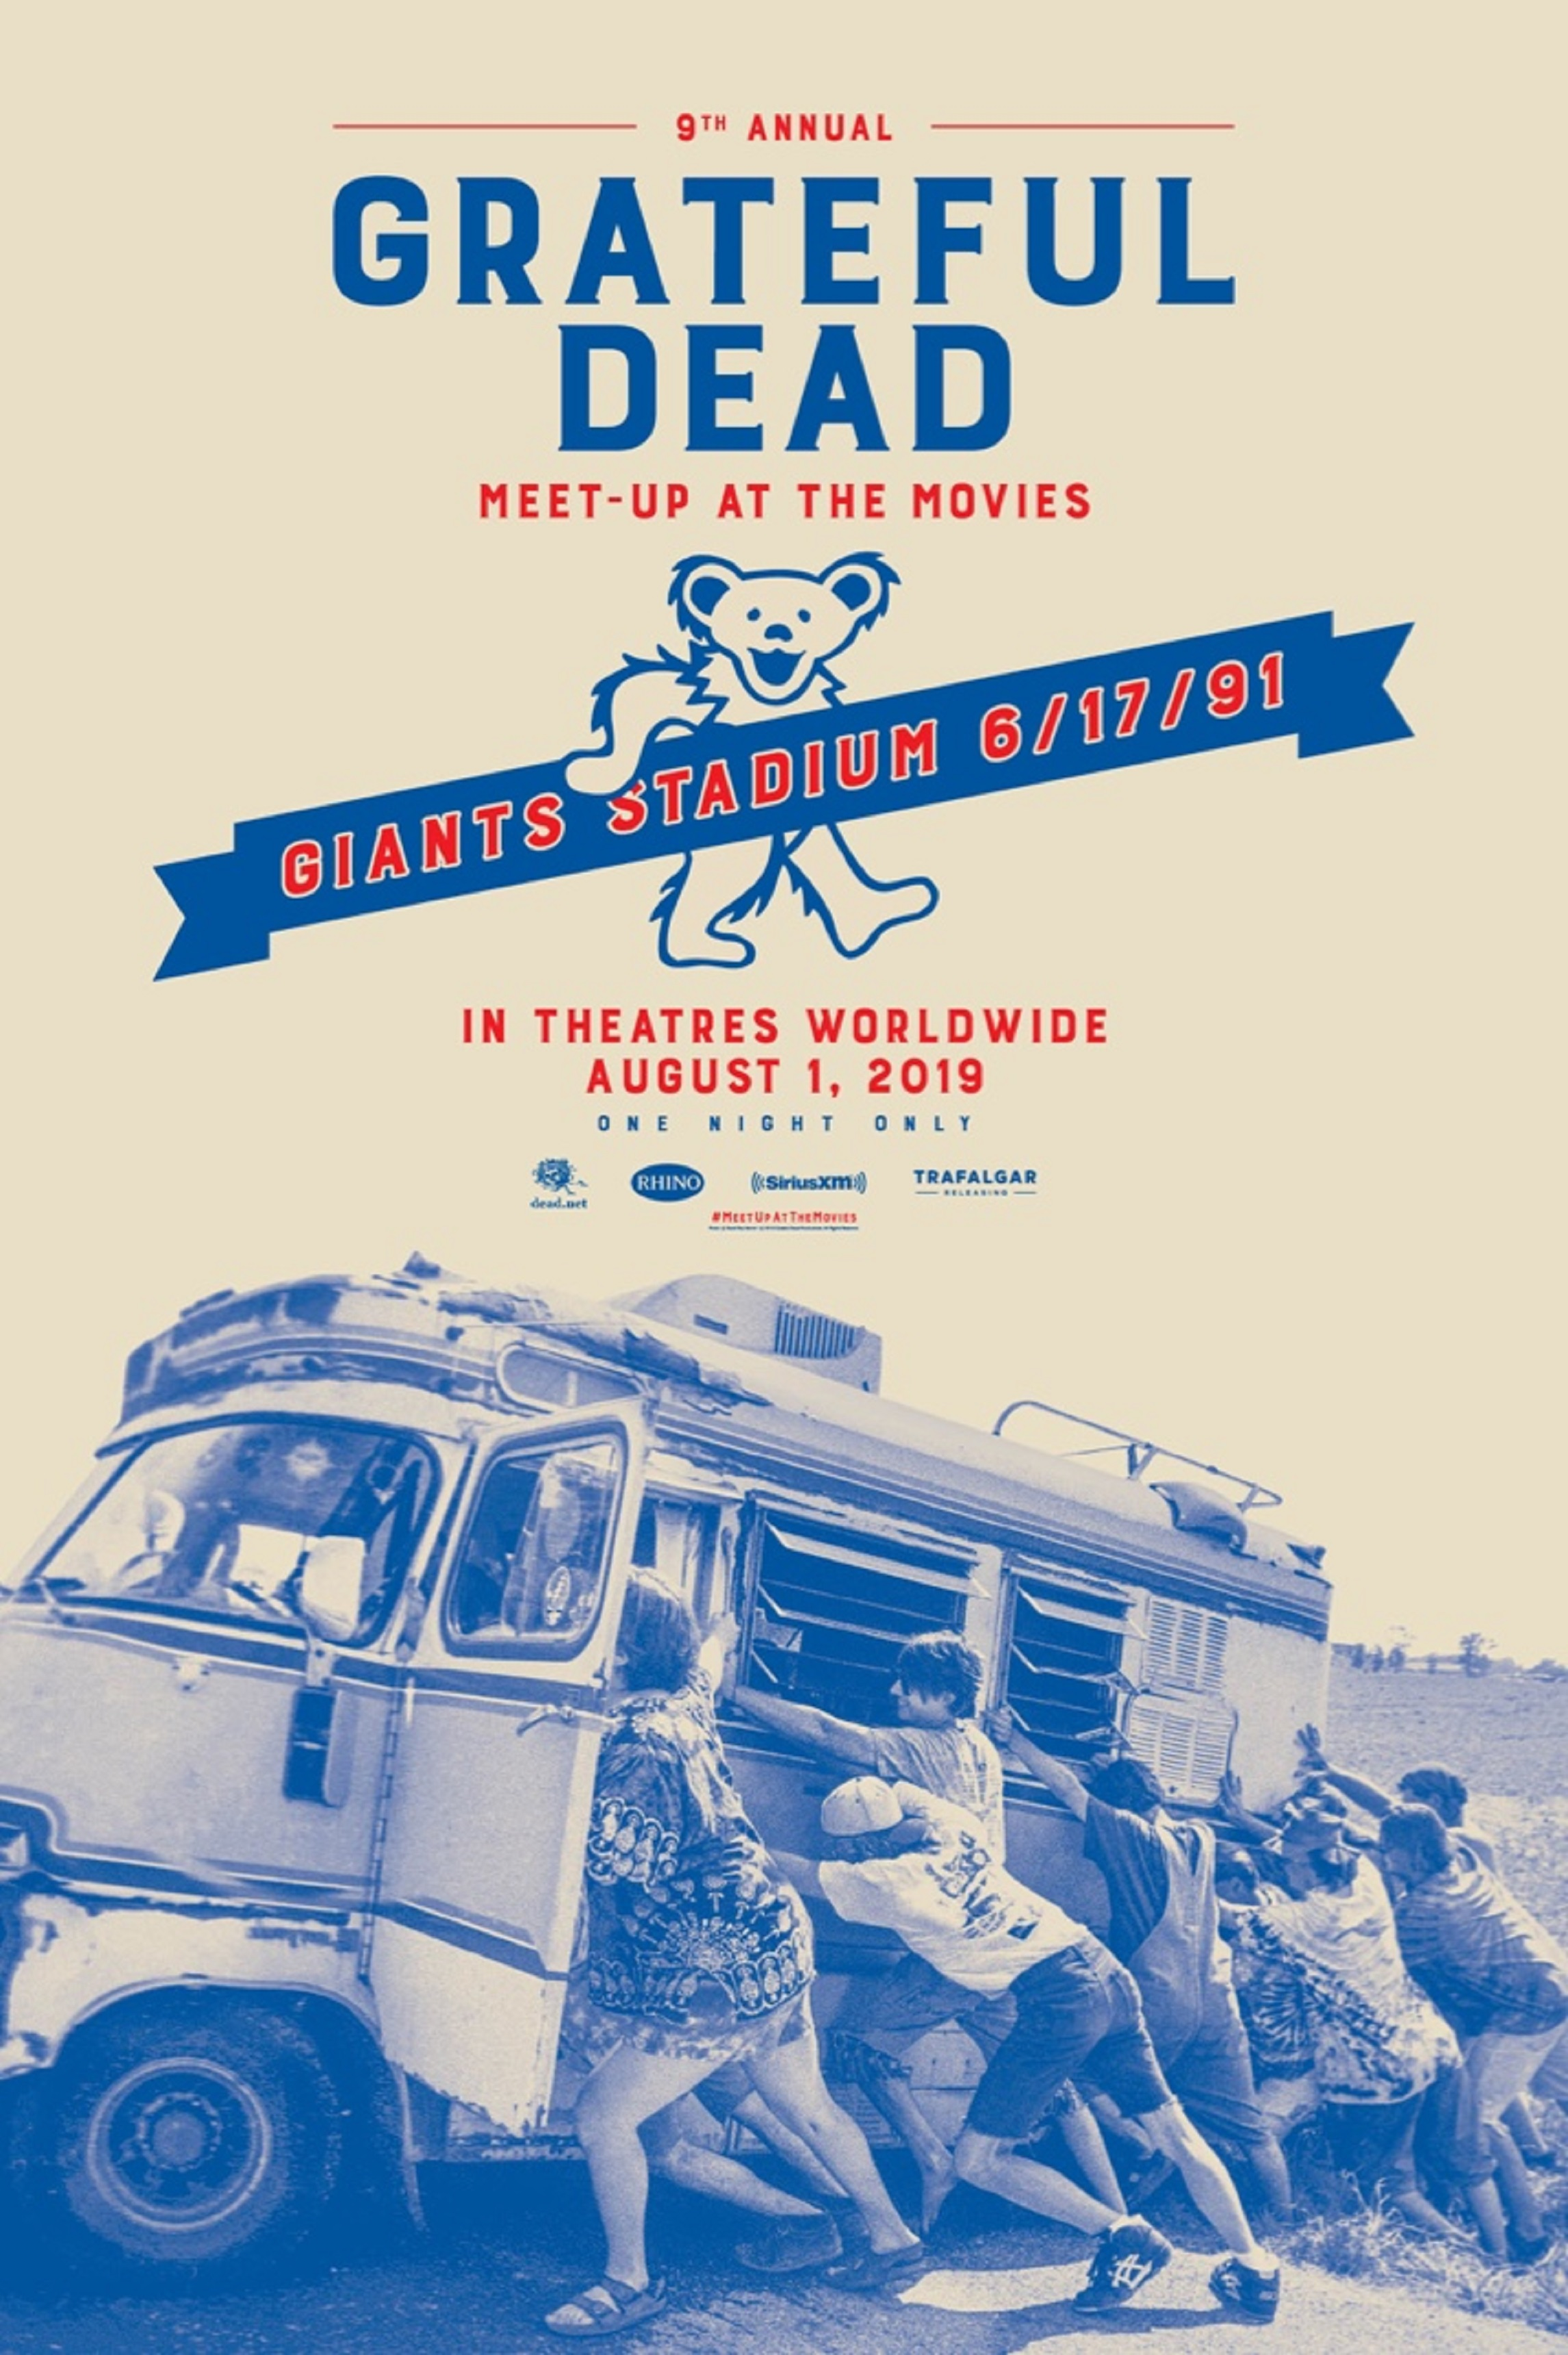 This Thursday: Join Us At The Grateful Dead Meet-Up At The Movies